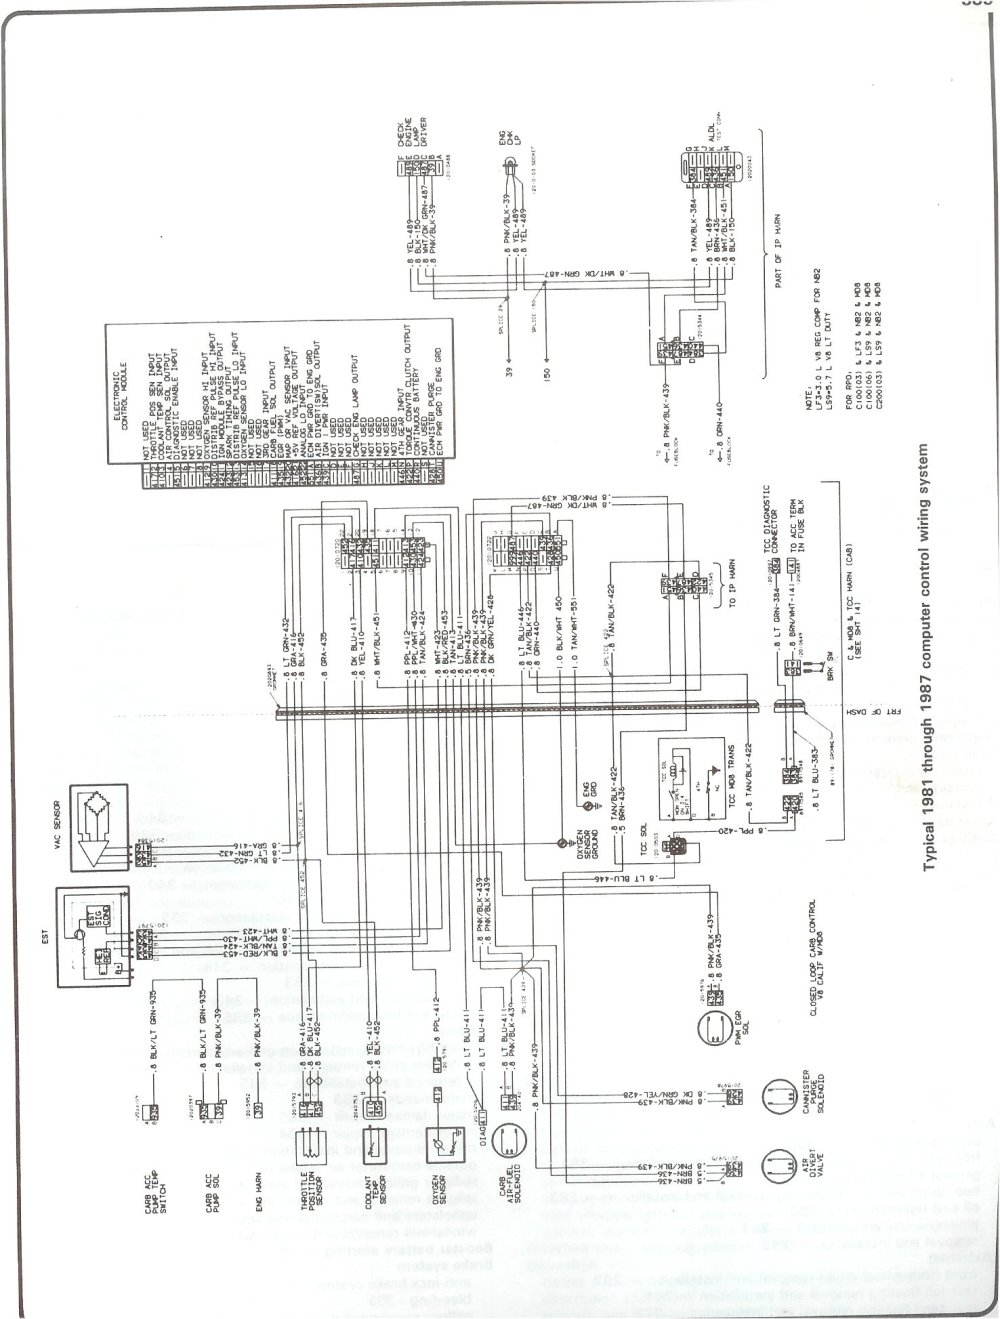 medium resolution of 83 chevy c10 wiring diagram wiring diagram 1983 chevy truck wiring diagram